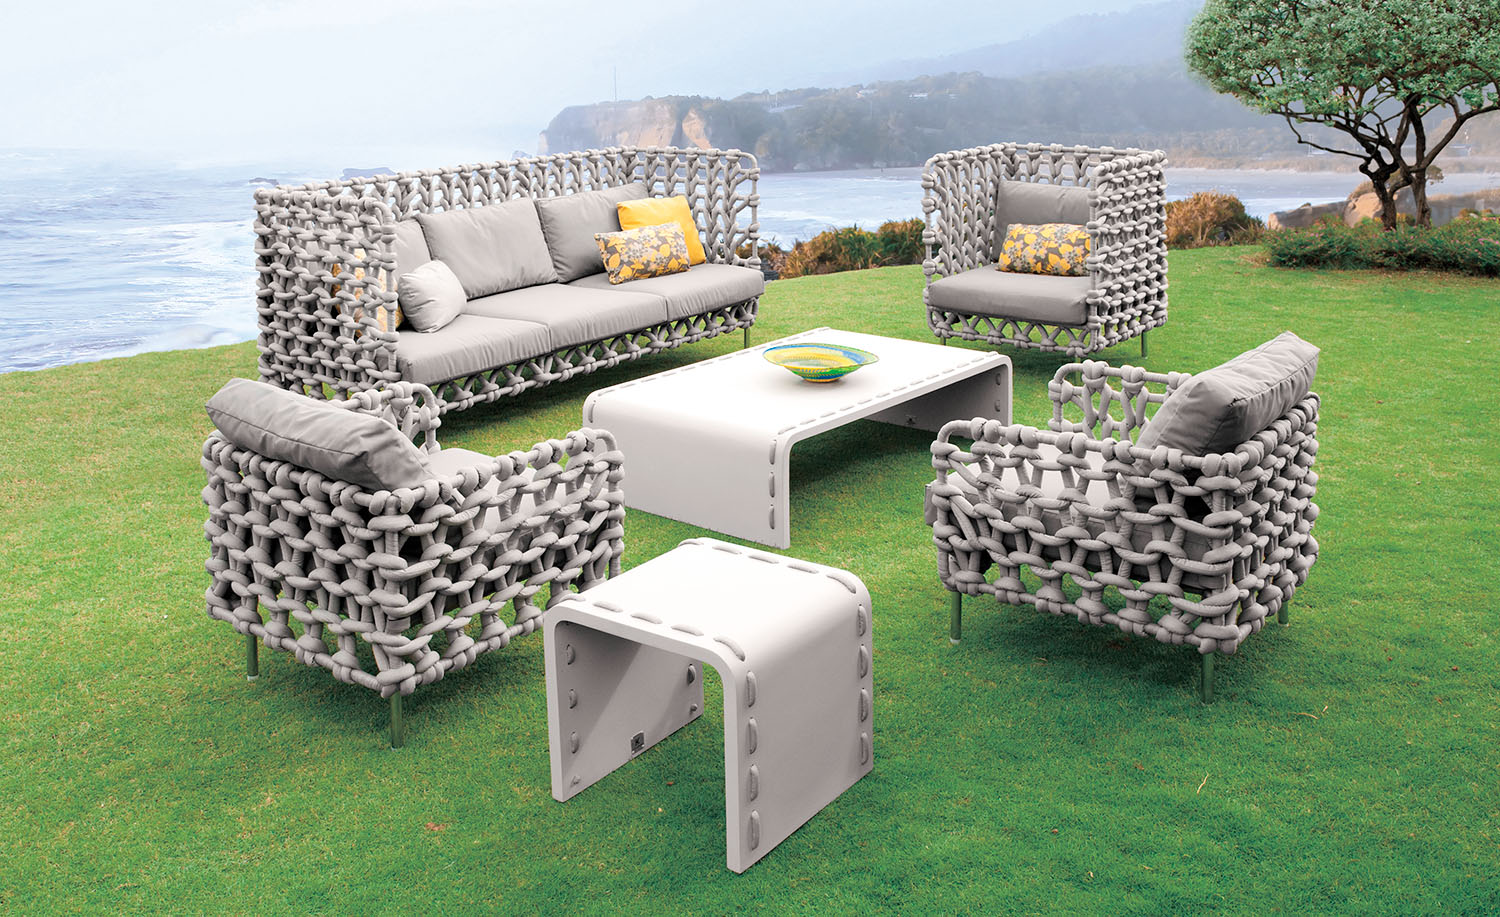 Stylish Furniture Stylish Furniture For Revamping Your Interiors And Exteriors